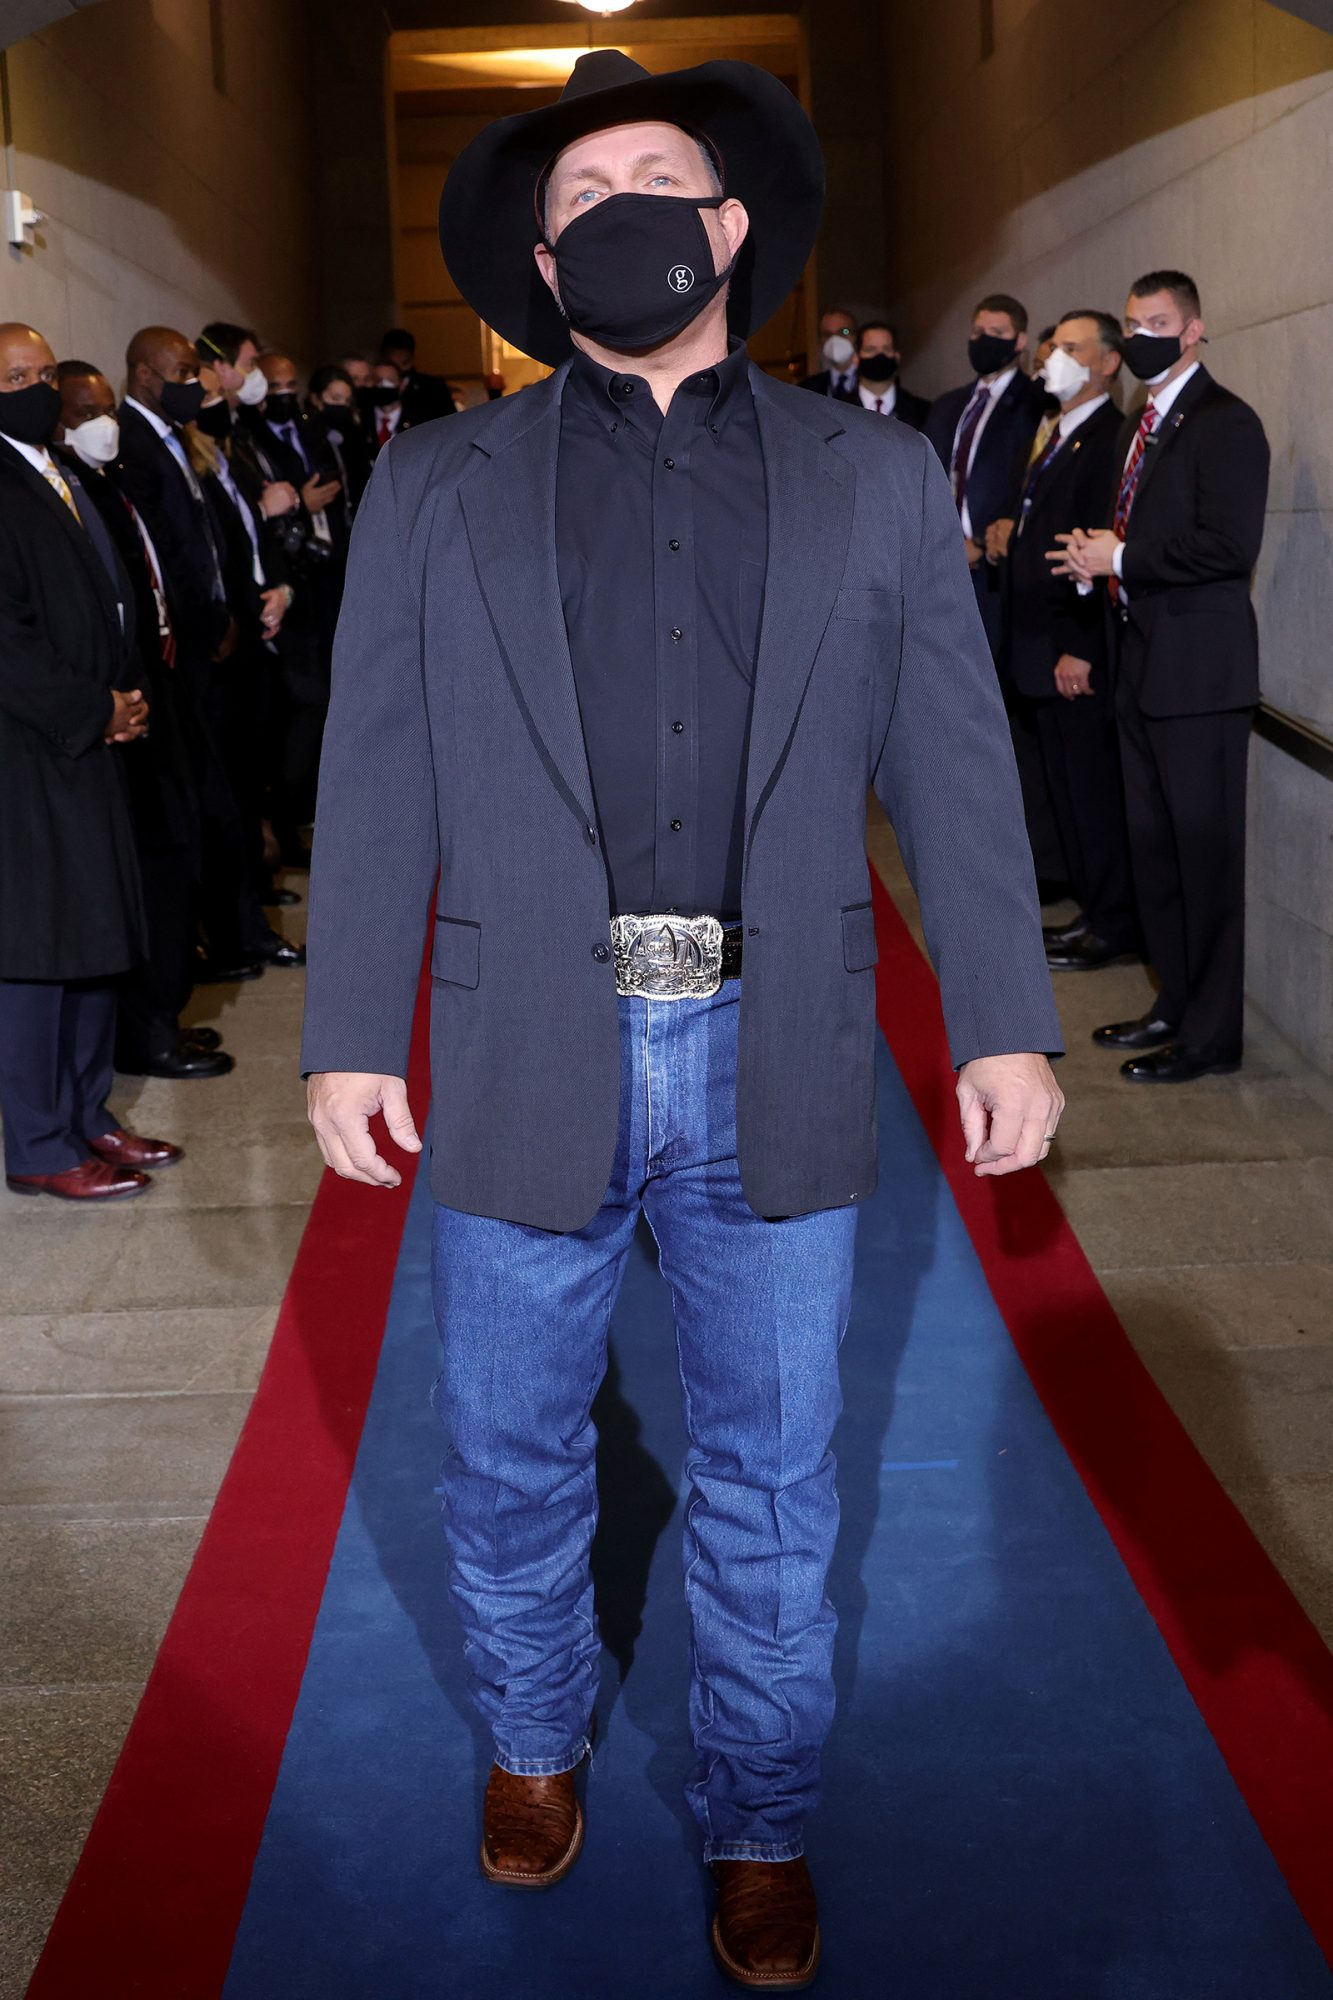 Garth Brooks performs at the inauguration of U.S. President Joe Biden on the West Front of the U.S. Capitol on January 20, 2021